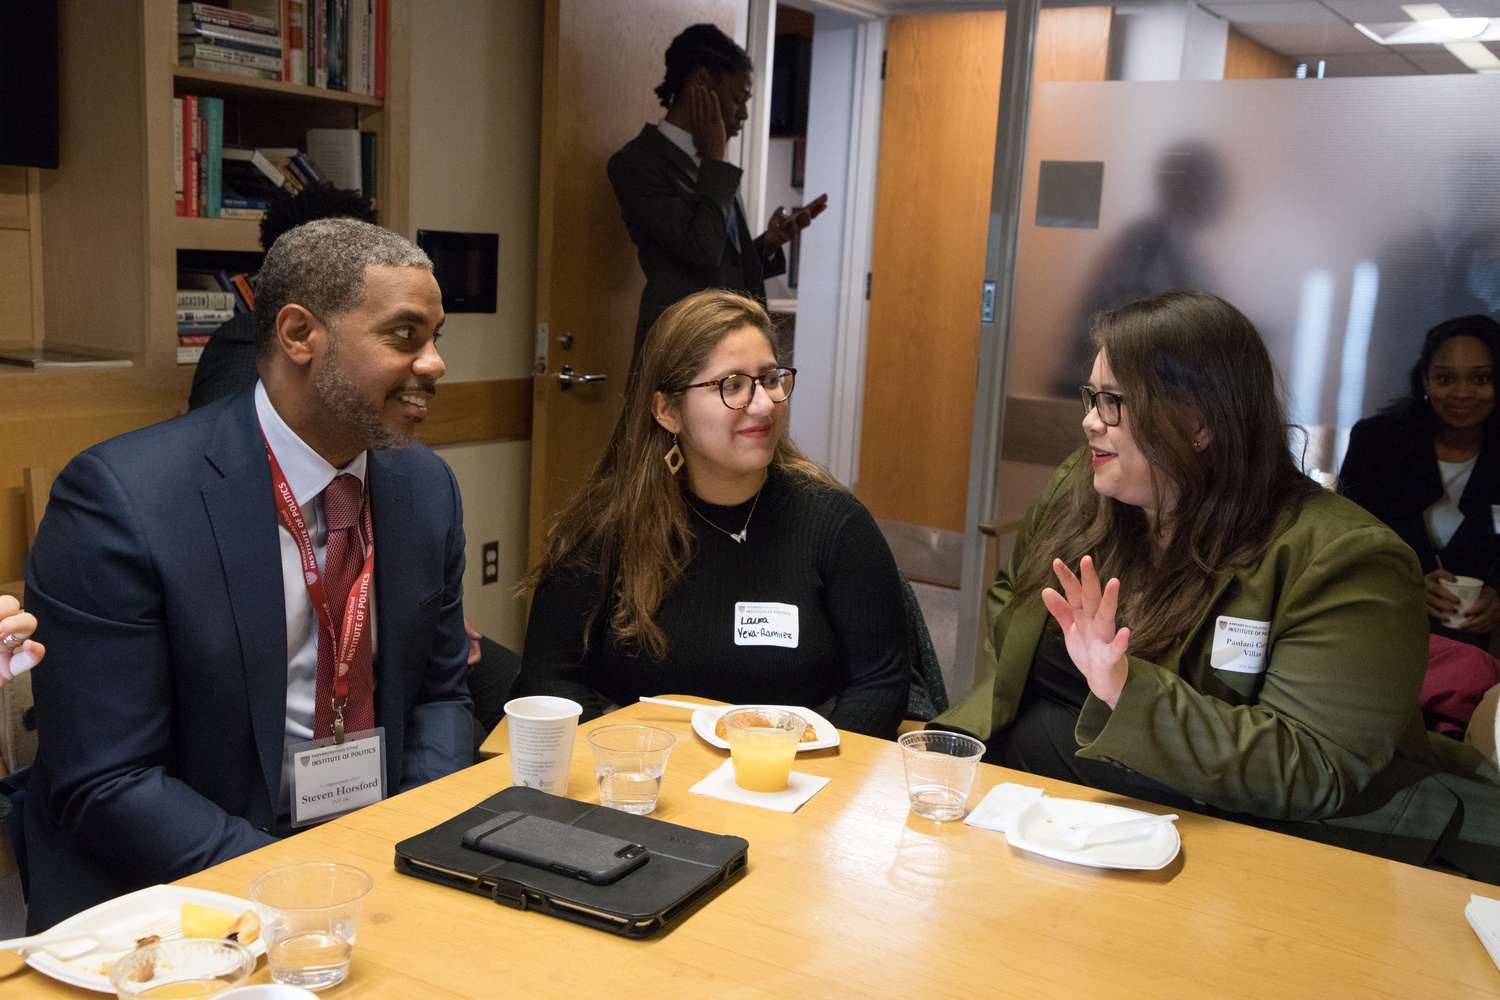 Steven A. Horsford (D-Nev.), who previously served in the House from 2013-2015, was unable to attend the 2012 orientation, but attended after his re-election last year. Above, he speaks to students over breakfast.